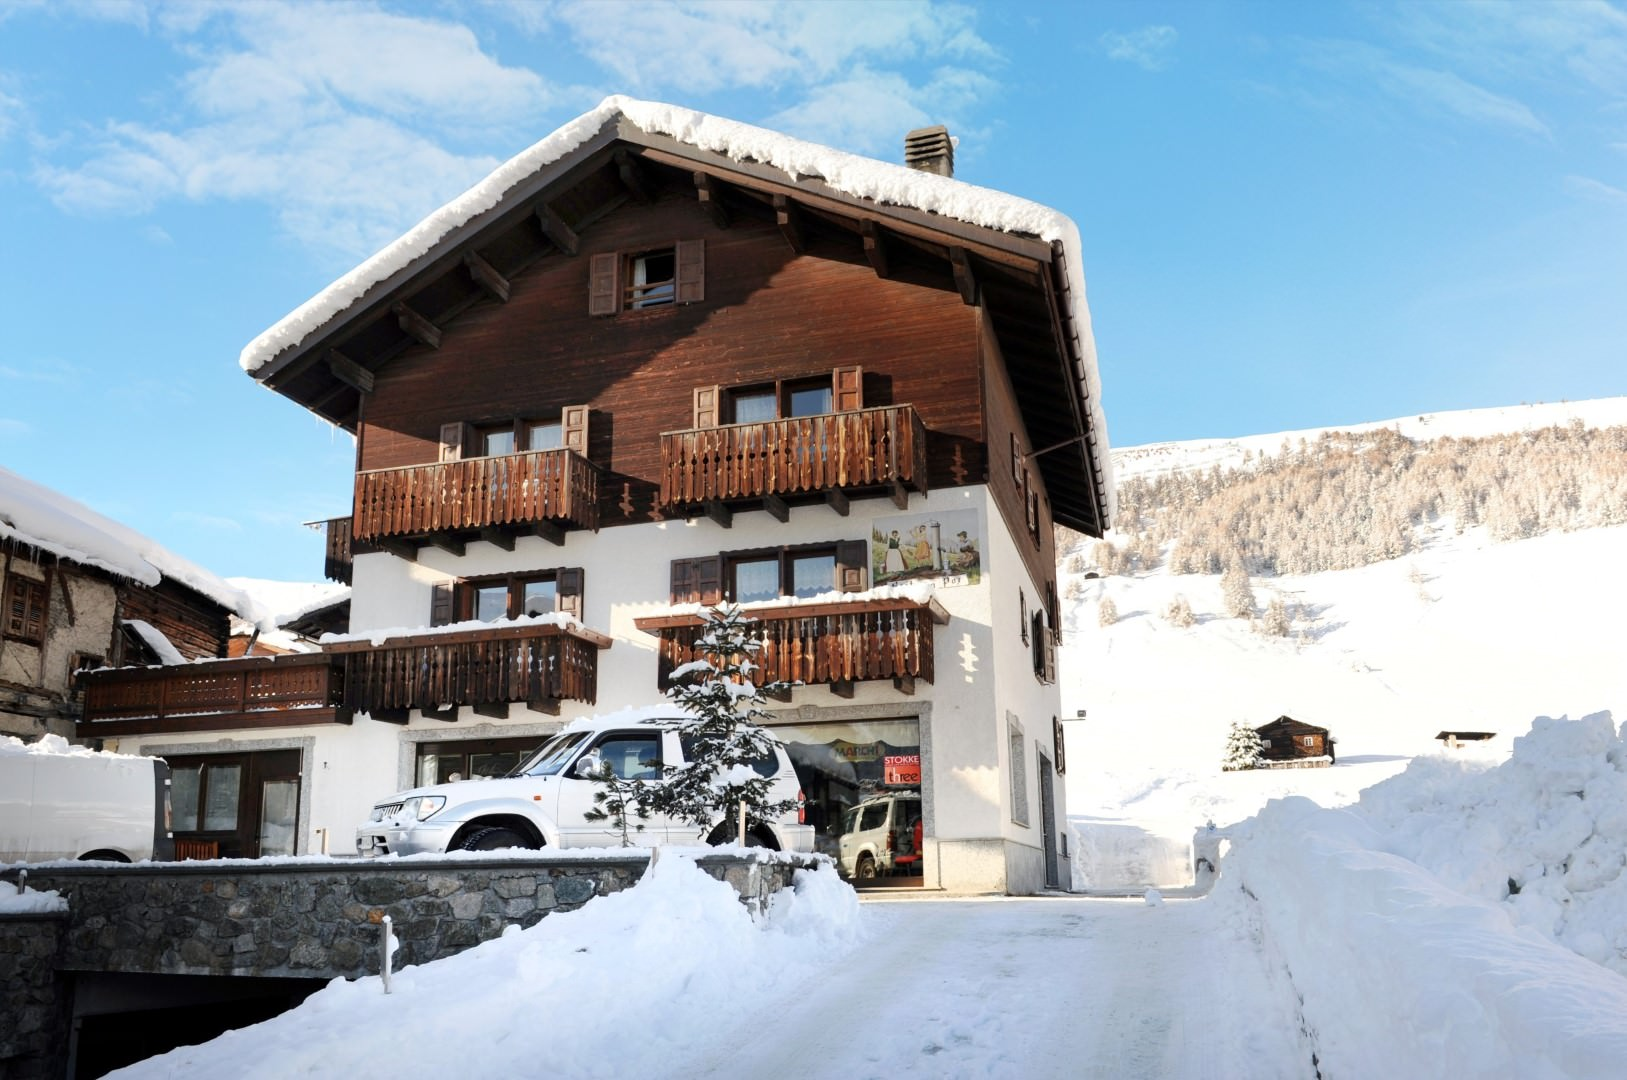 Appartement Bait da Poz in Livigno, Appartement Bait da Poz / Italien